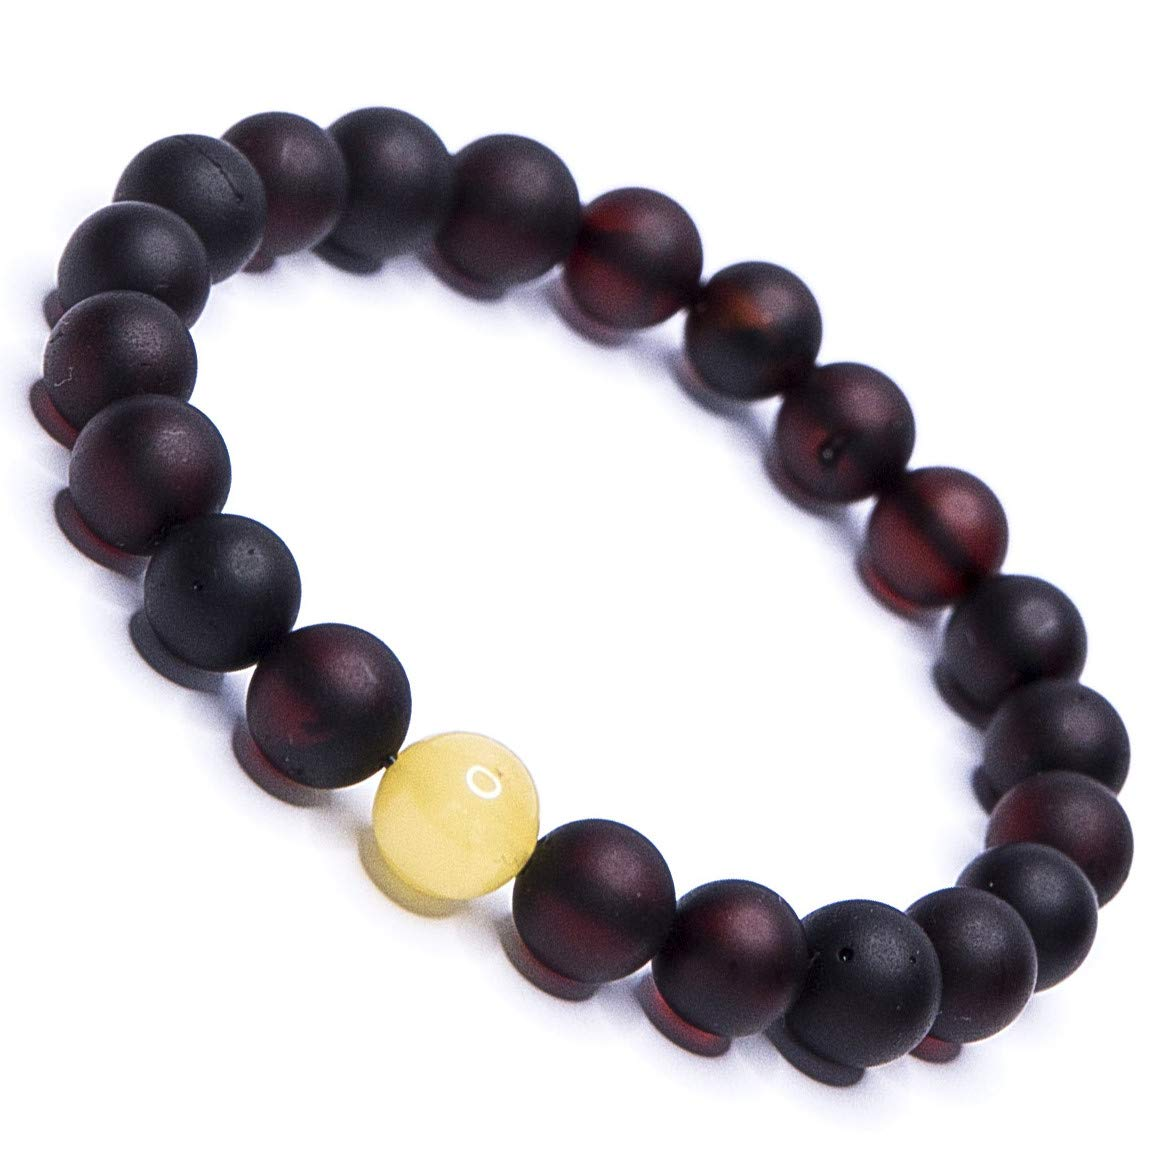 Natural Baltic Amber Bead Stretch Bracelet in a Luxury Gift Box | Men, Women and Children (Unisex) (Dark Cherry with 1 Cream Yellow, XS - for 5,5 inch Wrist) B11